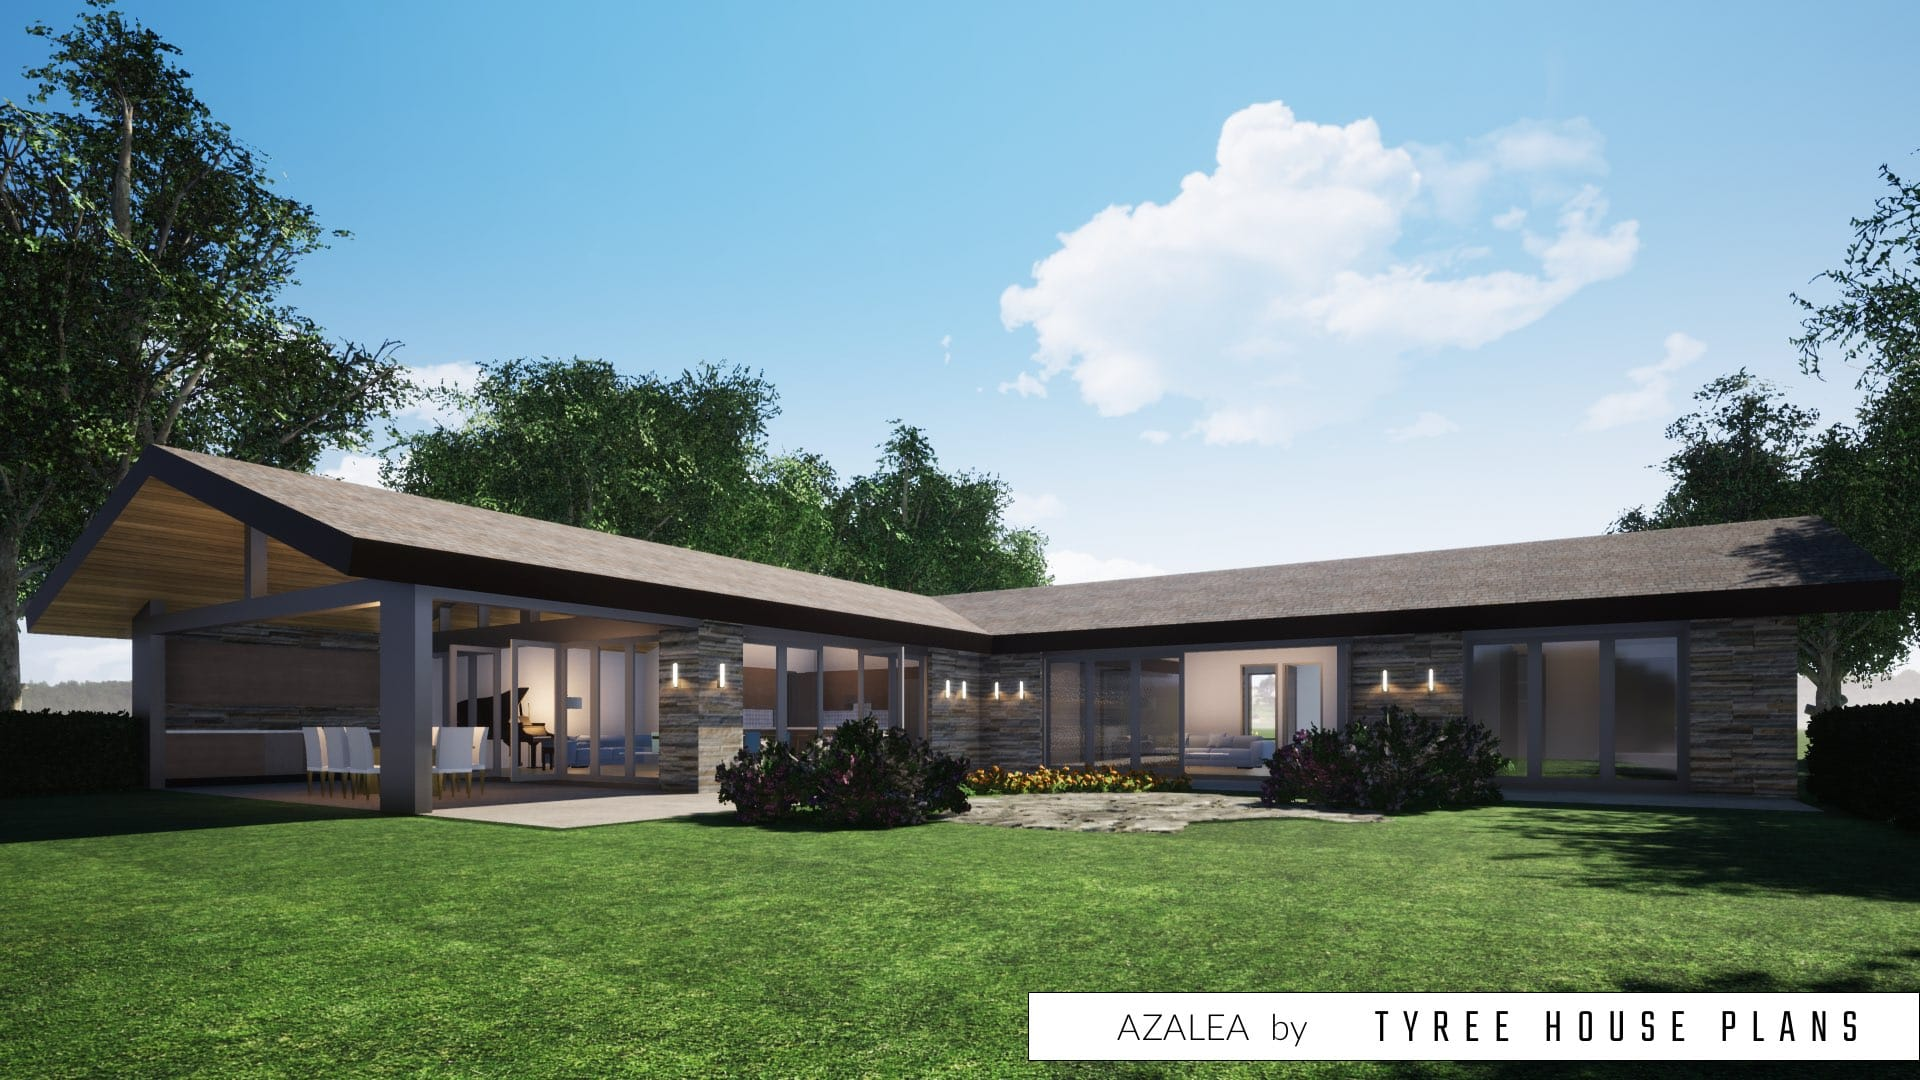 Azalea House Plan by Tyree House Plans